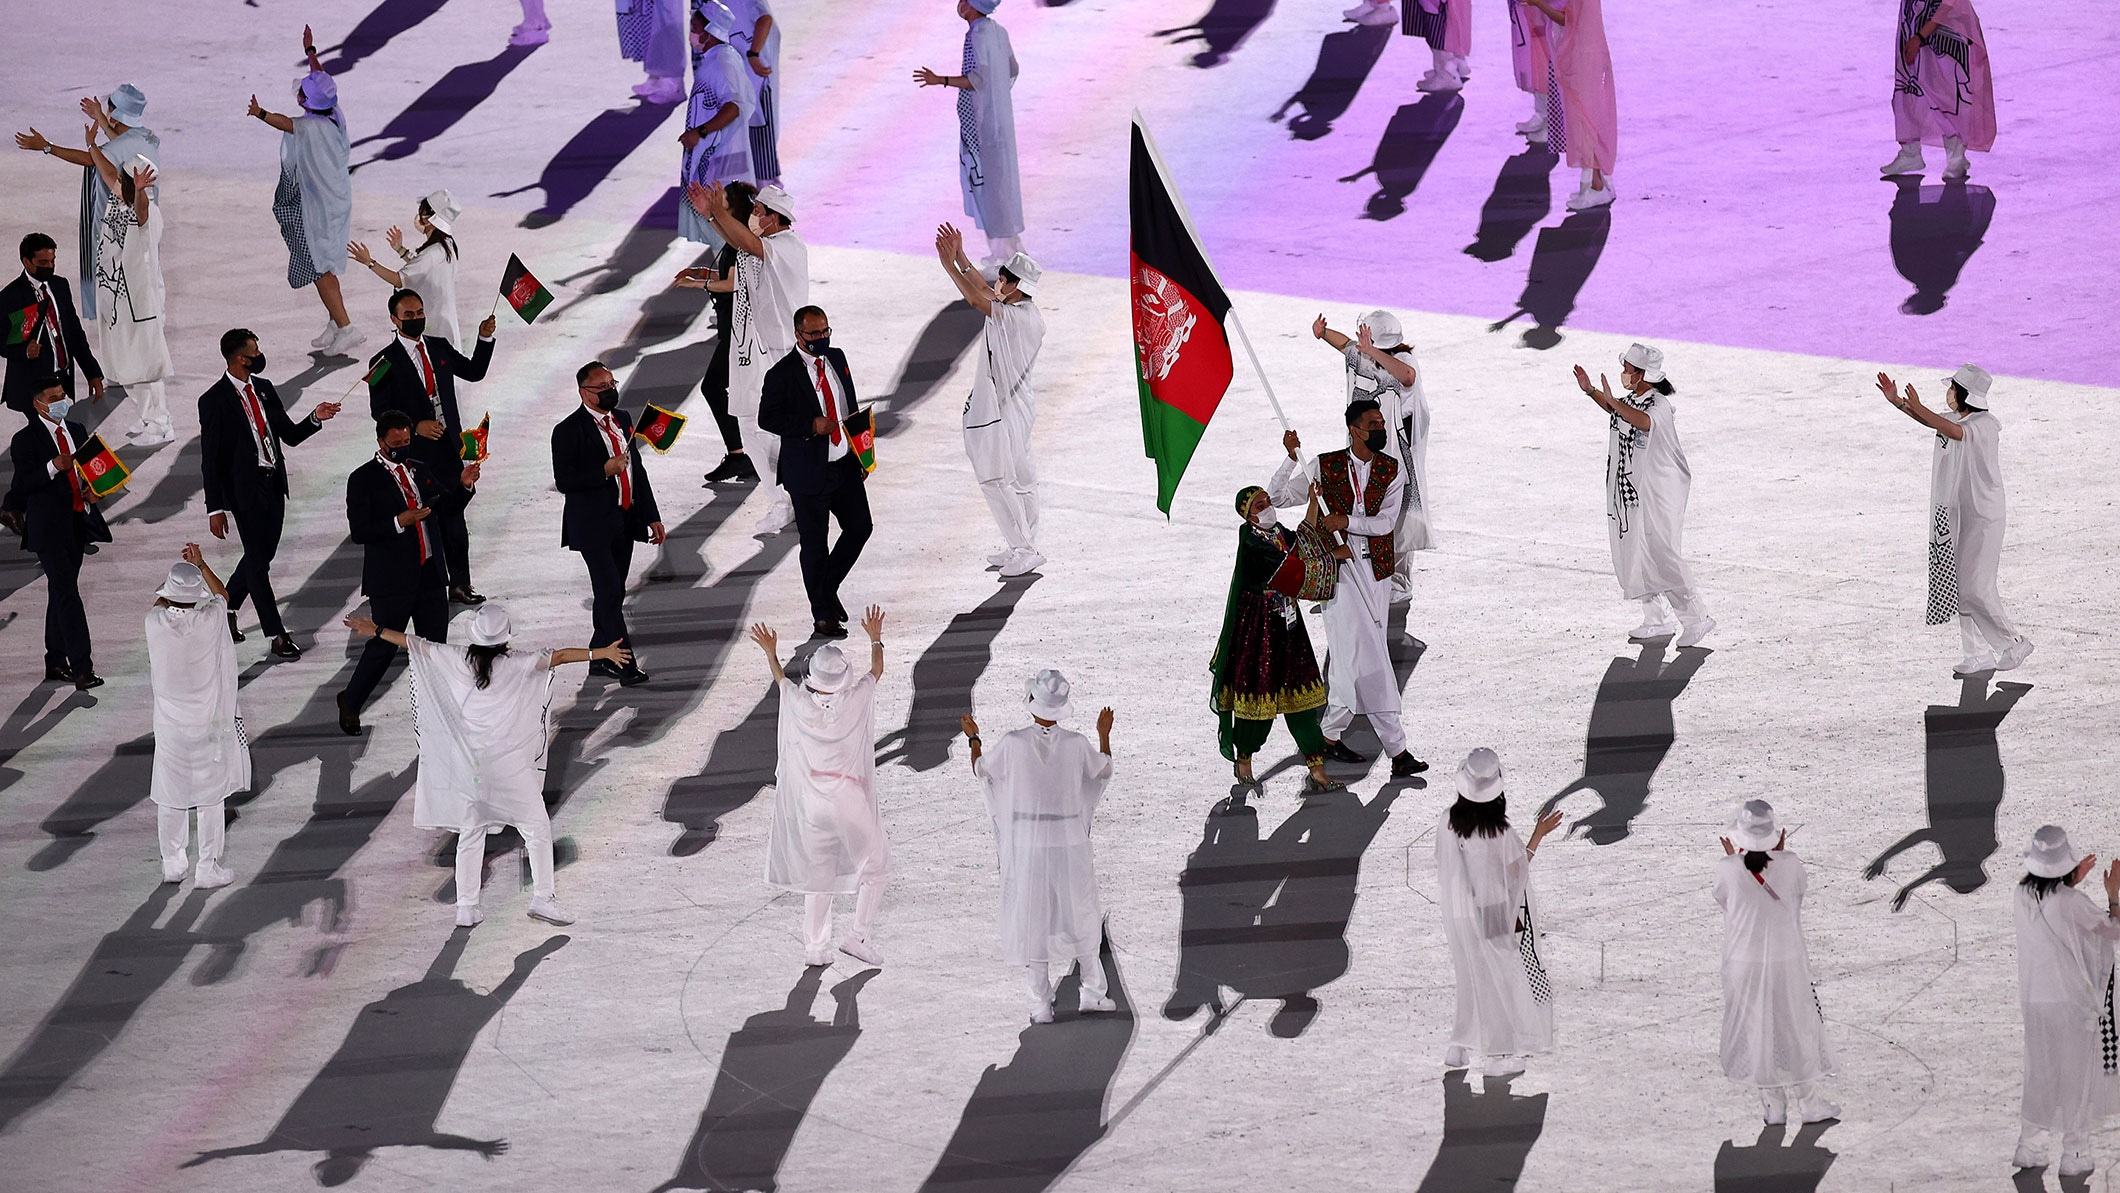 Team Afghanistan enters during the Opening Ceremony of the Tokyo 2020 Olympic Games at Olympic Stadium on July 23, 2021 in Tokyo, Japan.